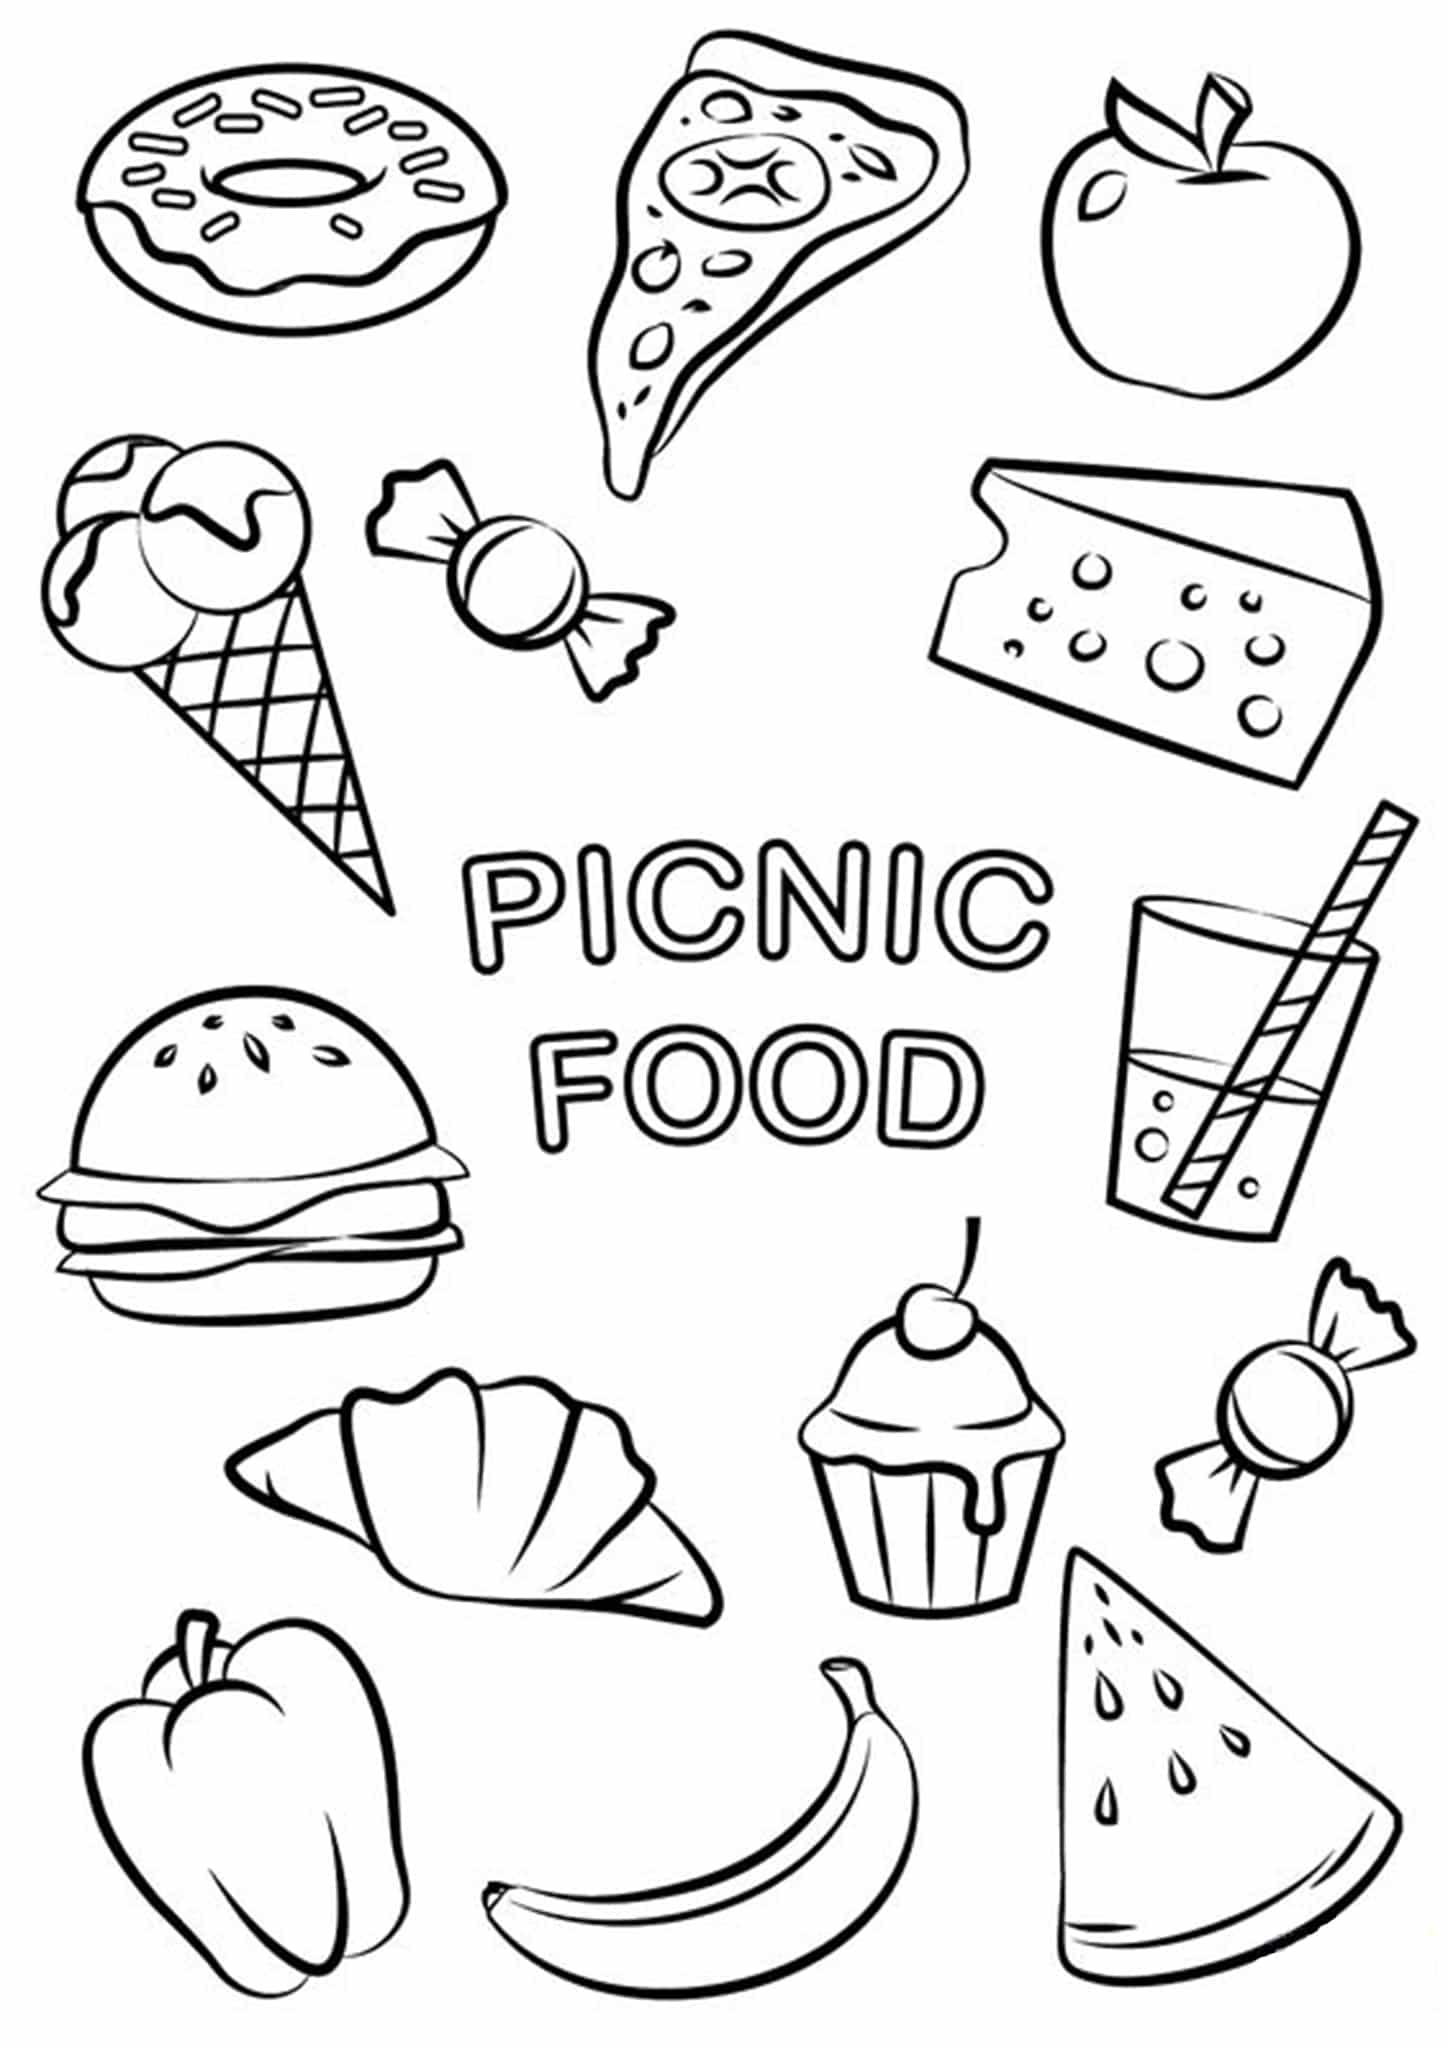 snack coloring pages free printable food coloring pages for kids pages coloring snack